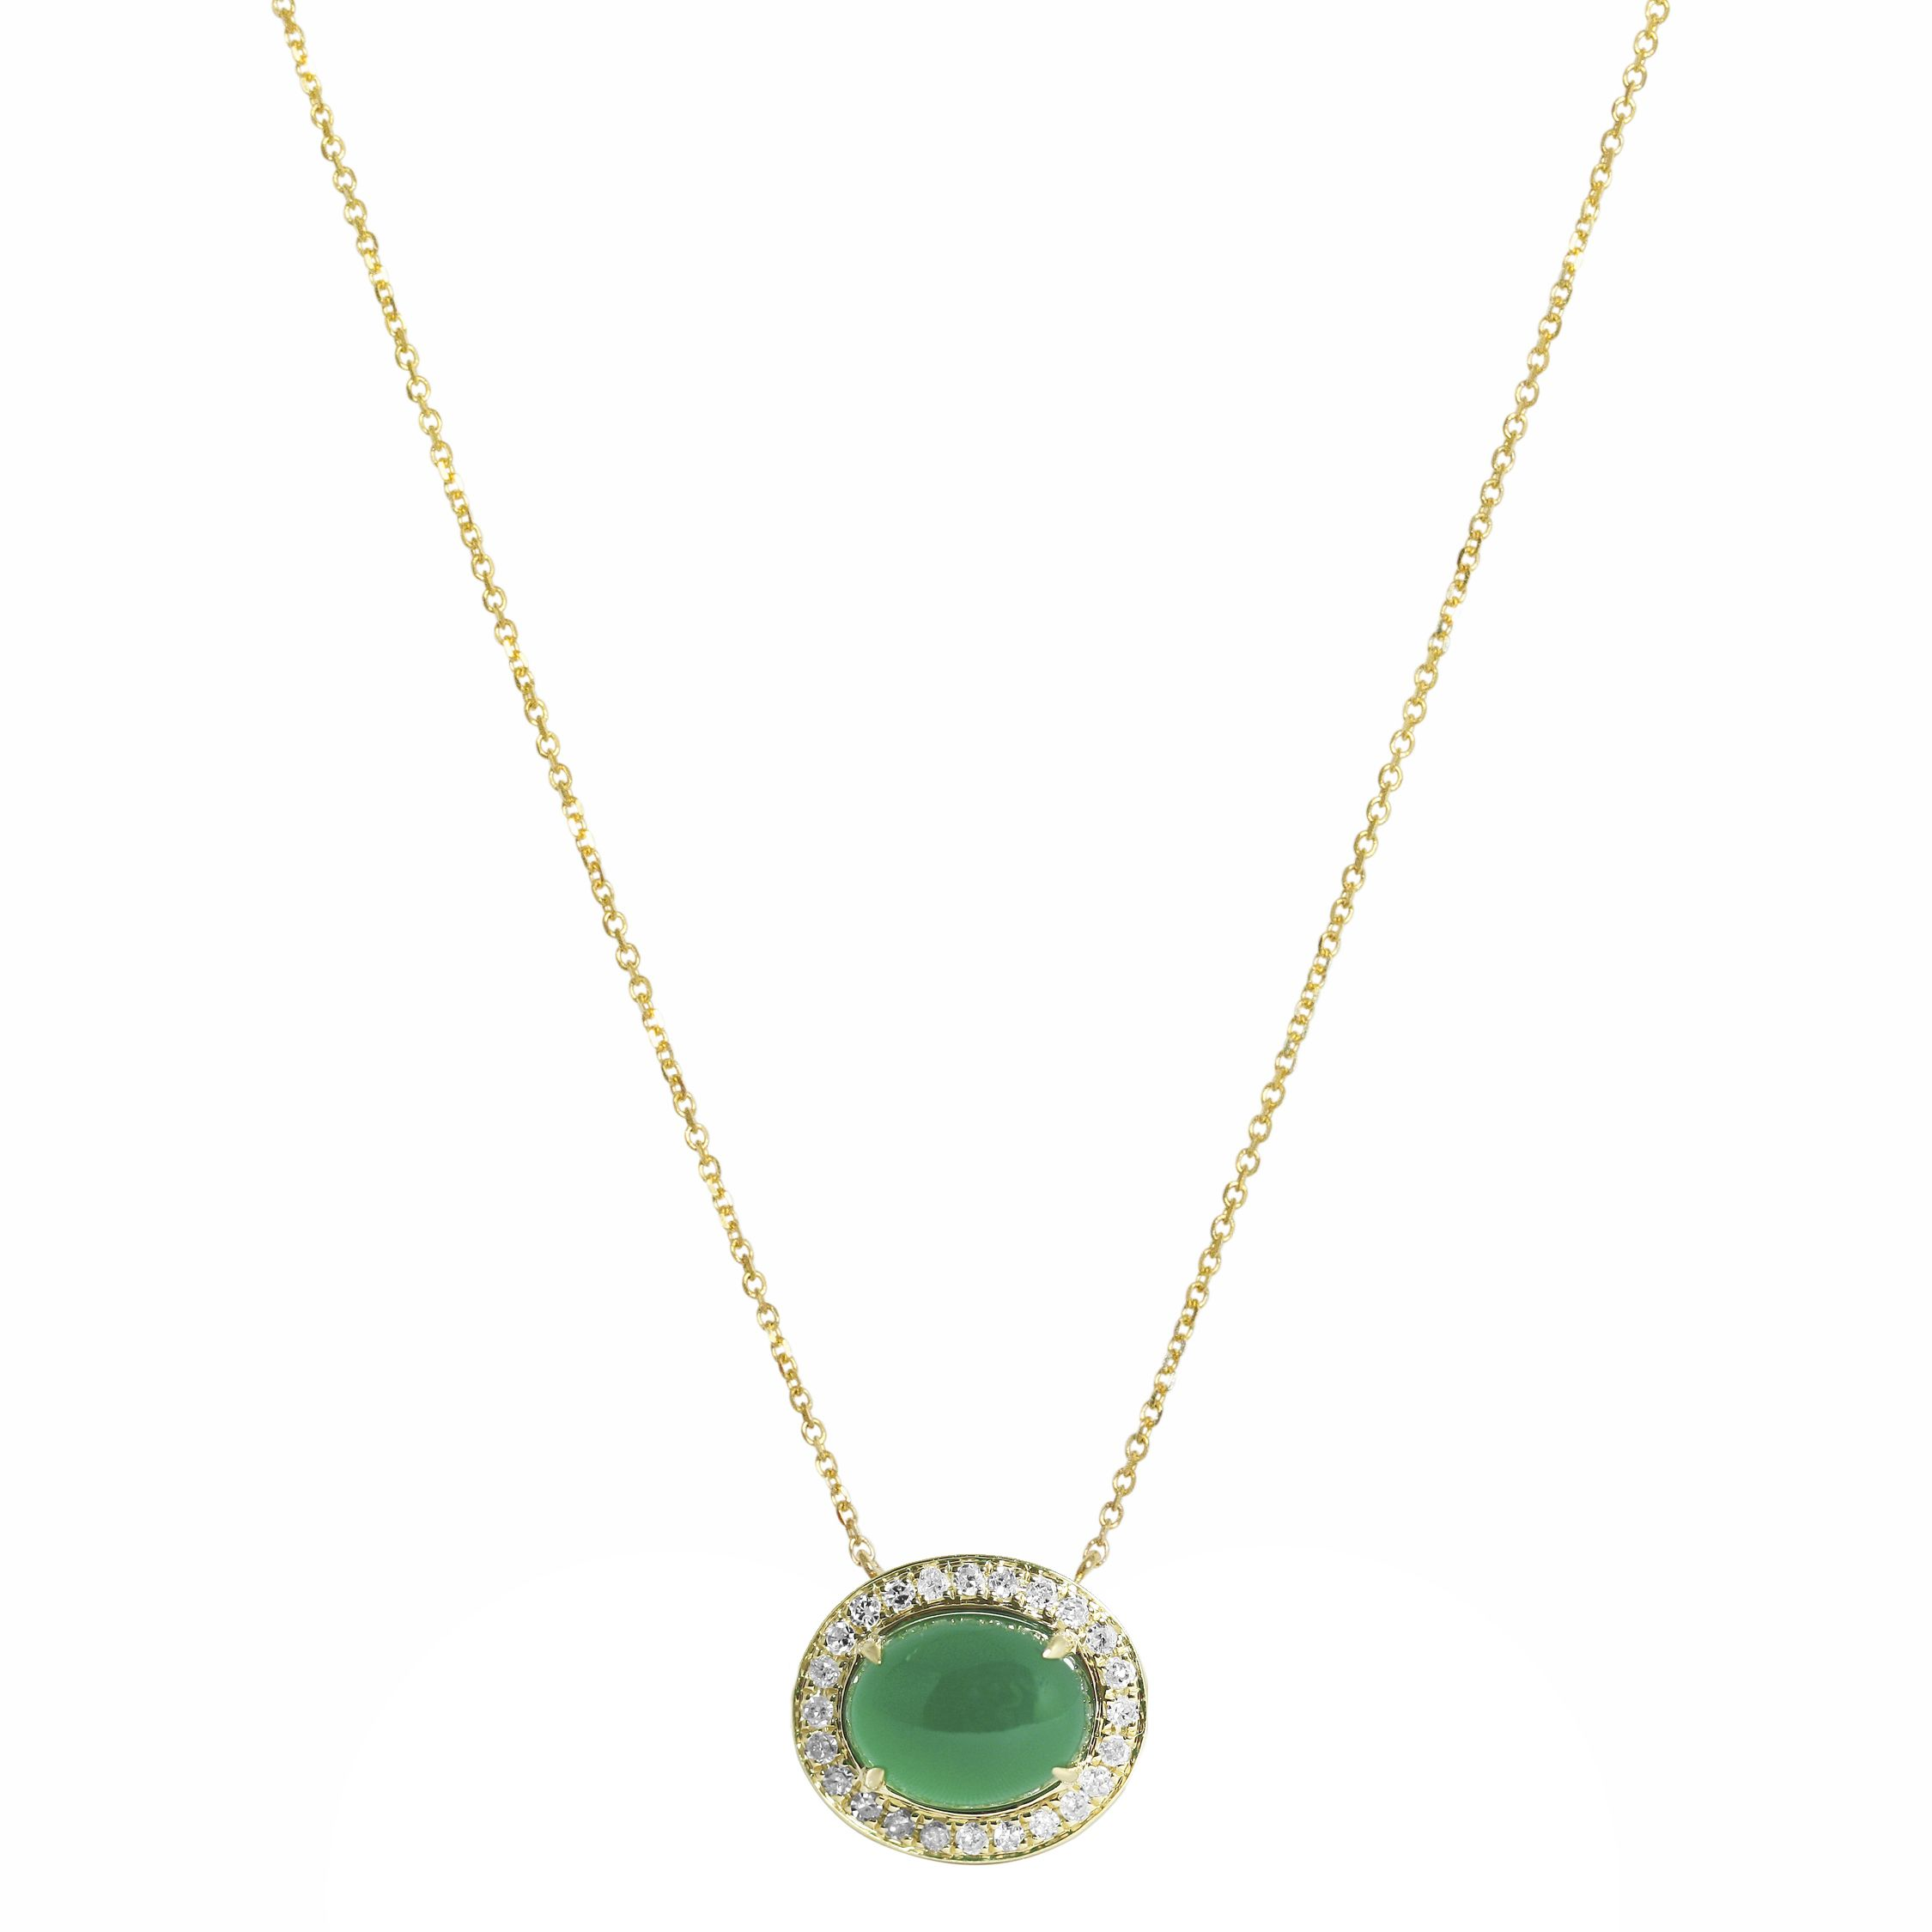 Hillary Green yx Necklace Meredith Marks Designs